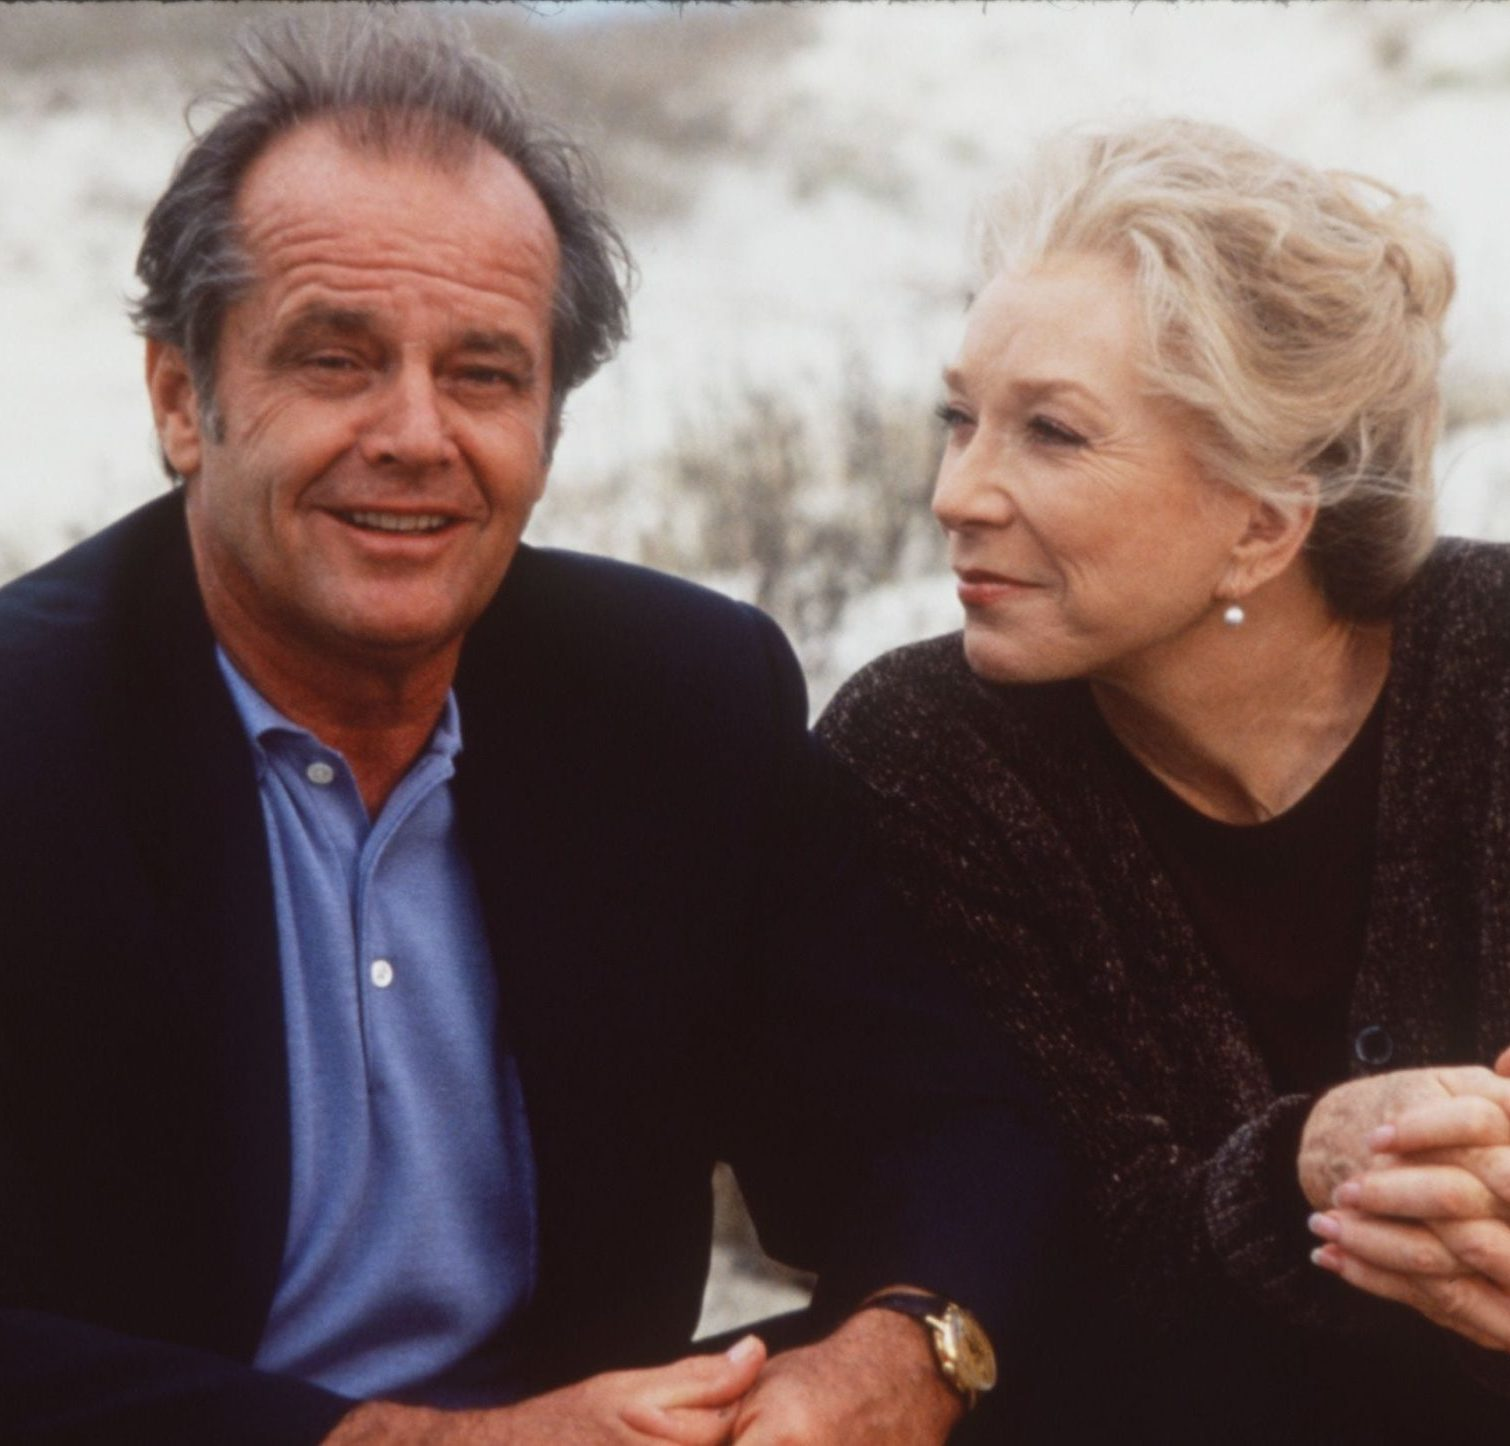 1 27 scaled e1611137061991 How Jack Nicholson Went From Class Clown To Bad Boy of Mulholland Drive